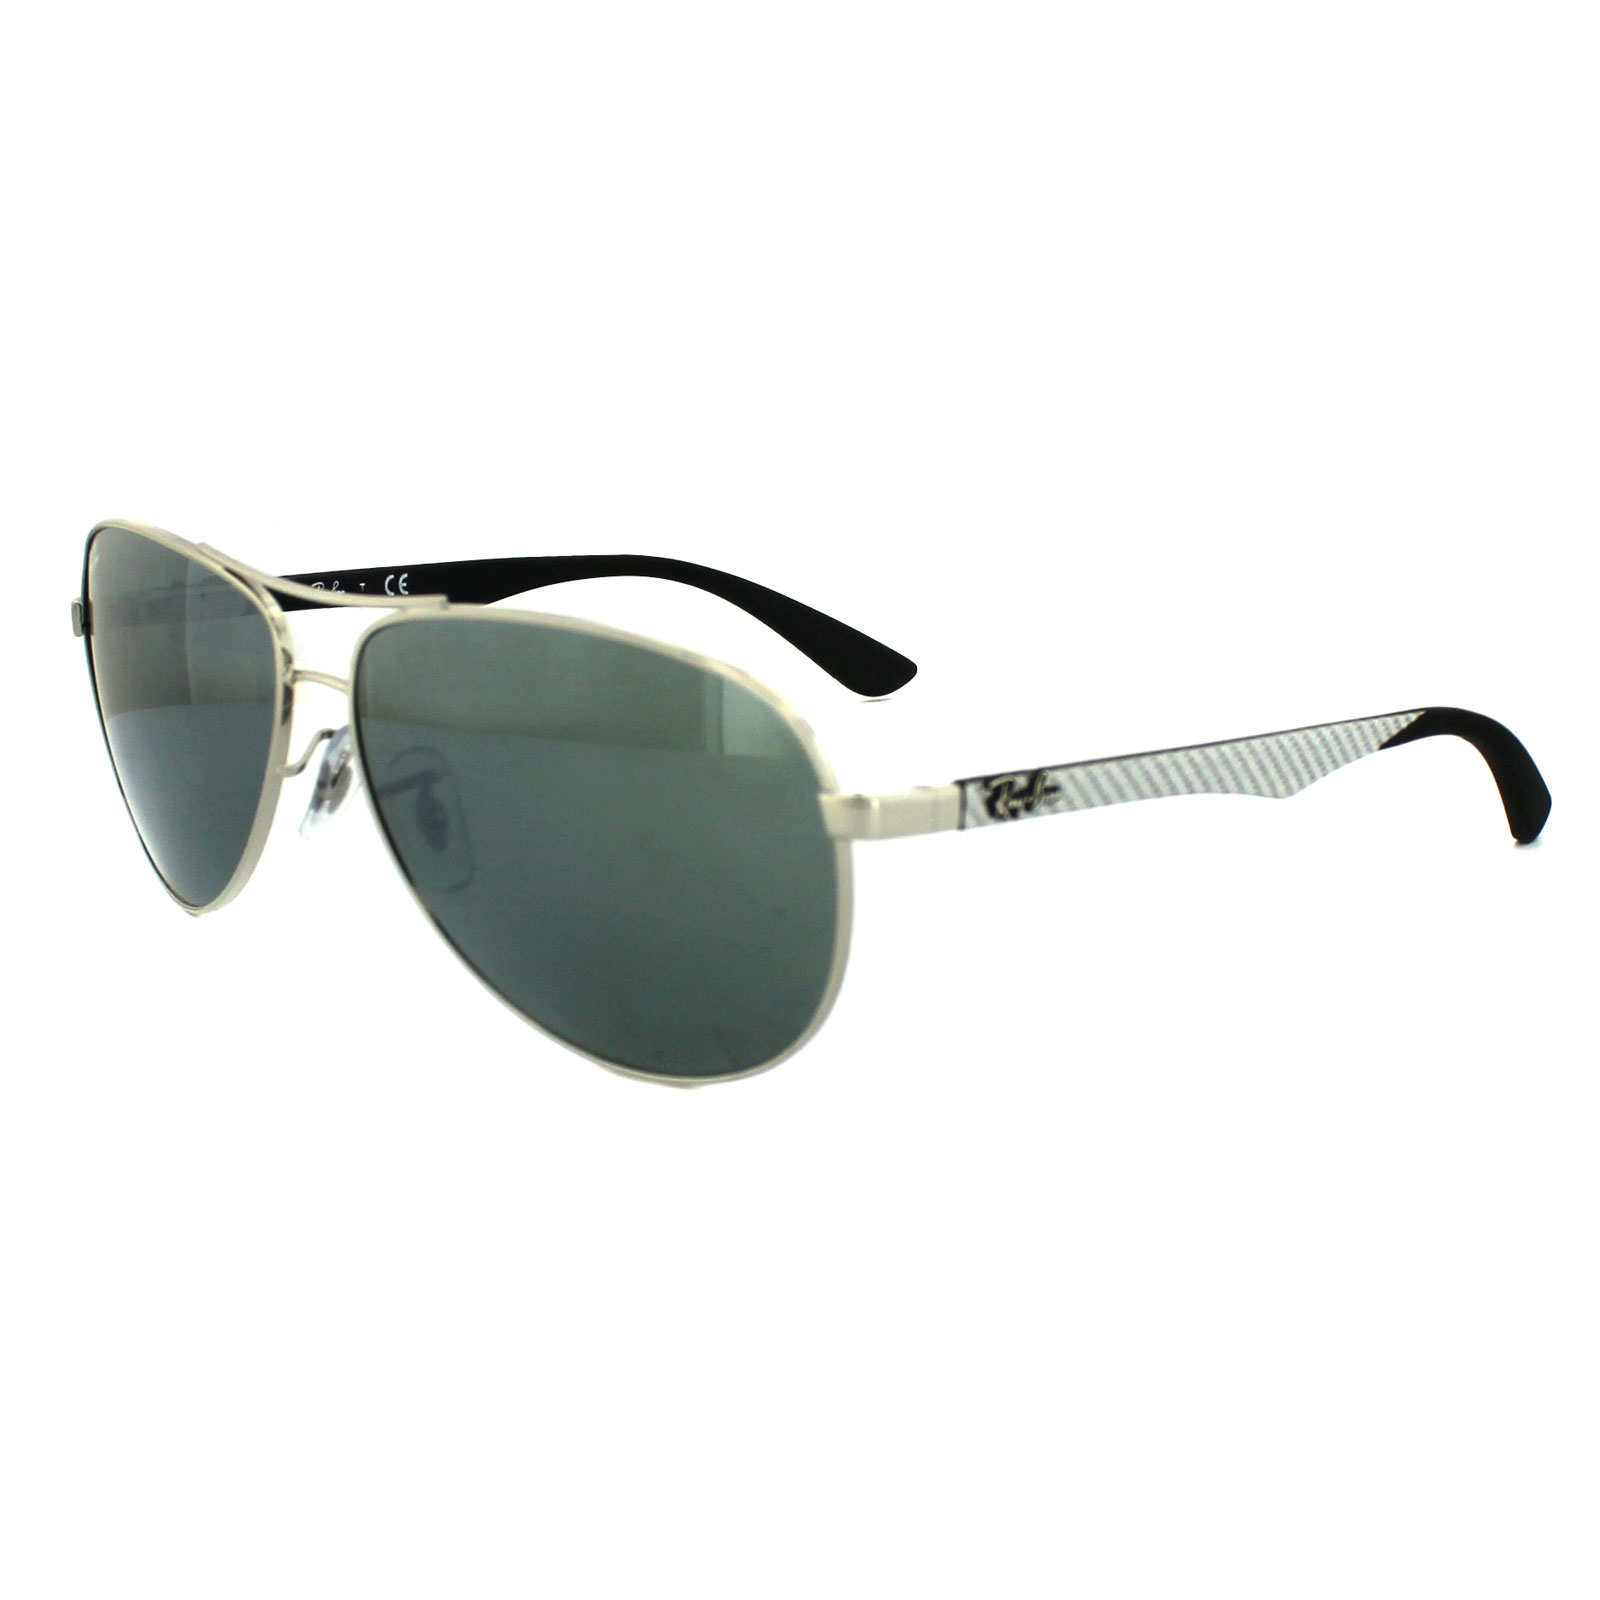 Cheap Ray Ban 8313 Sunglasses Discounted Sunglasses